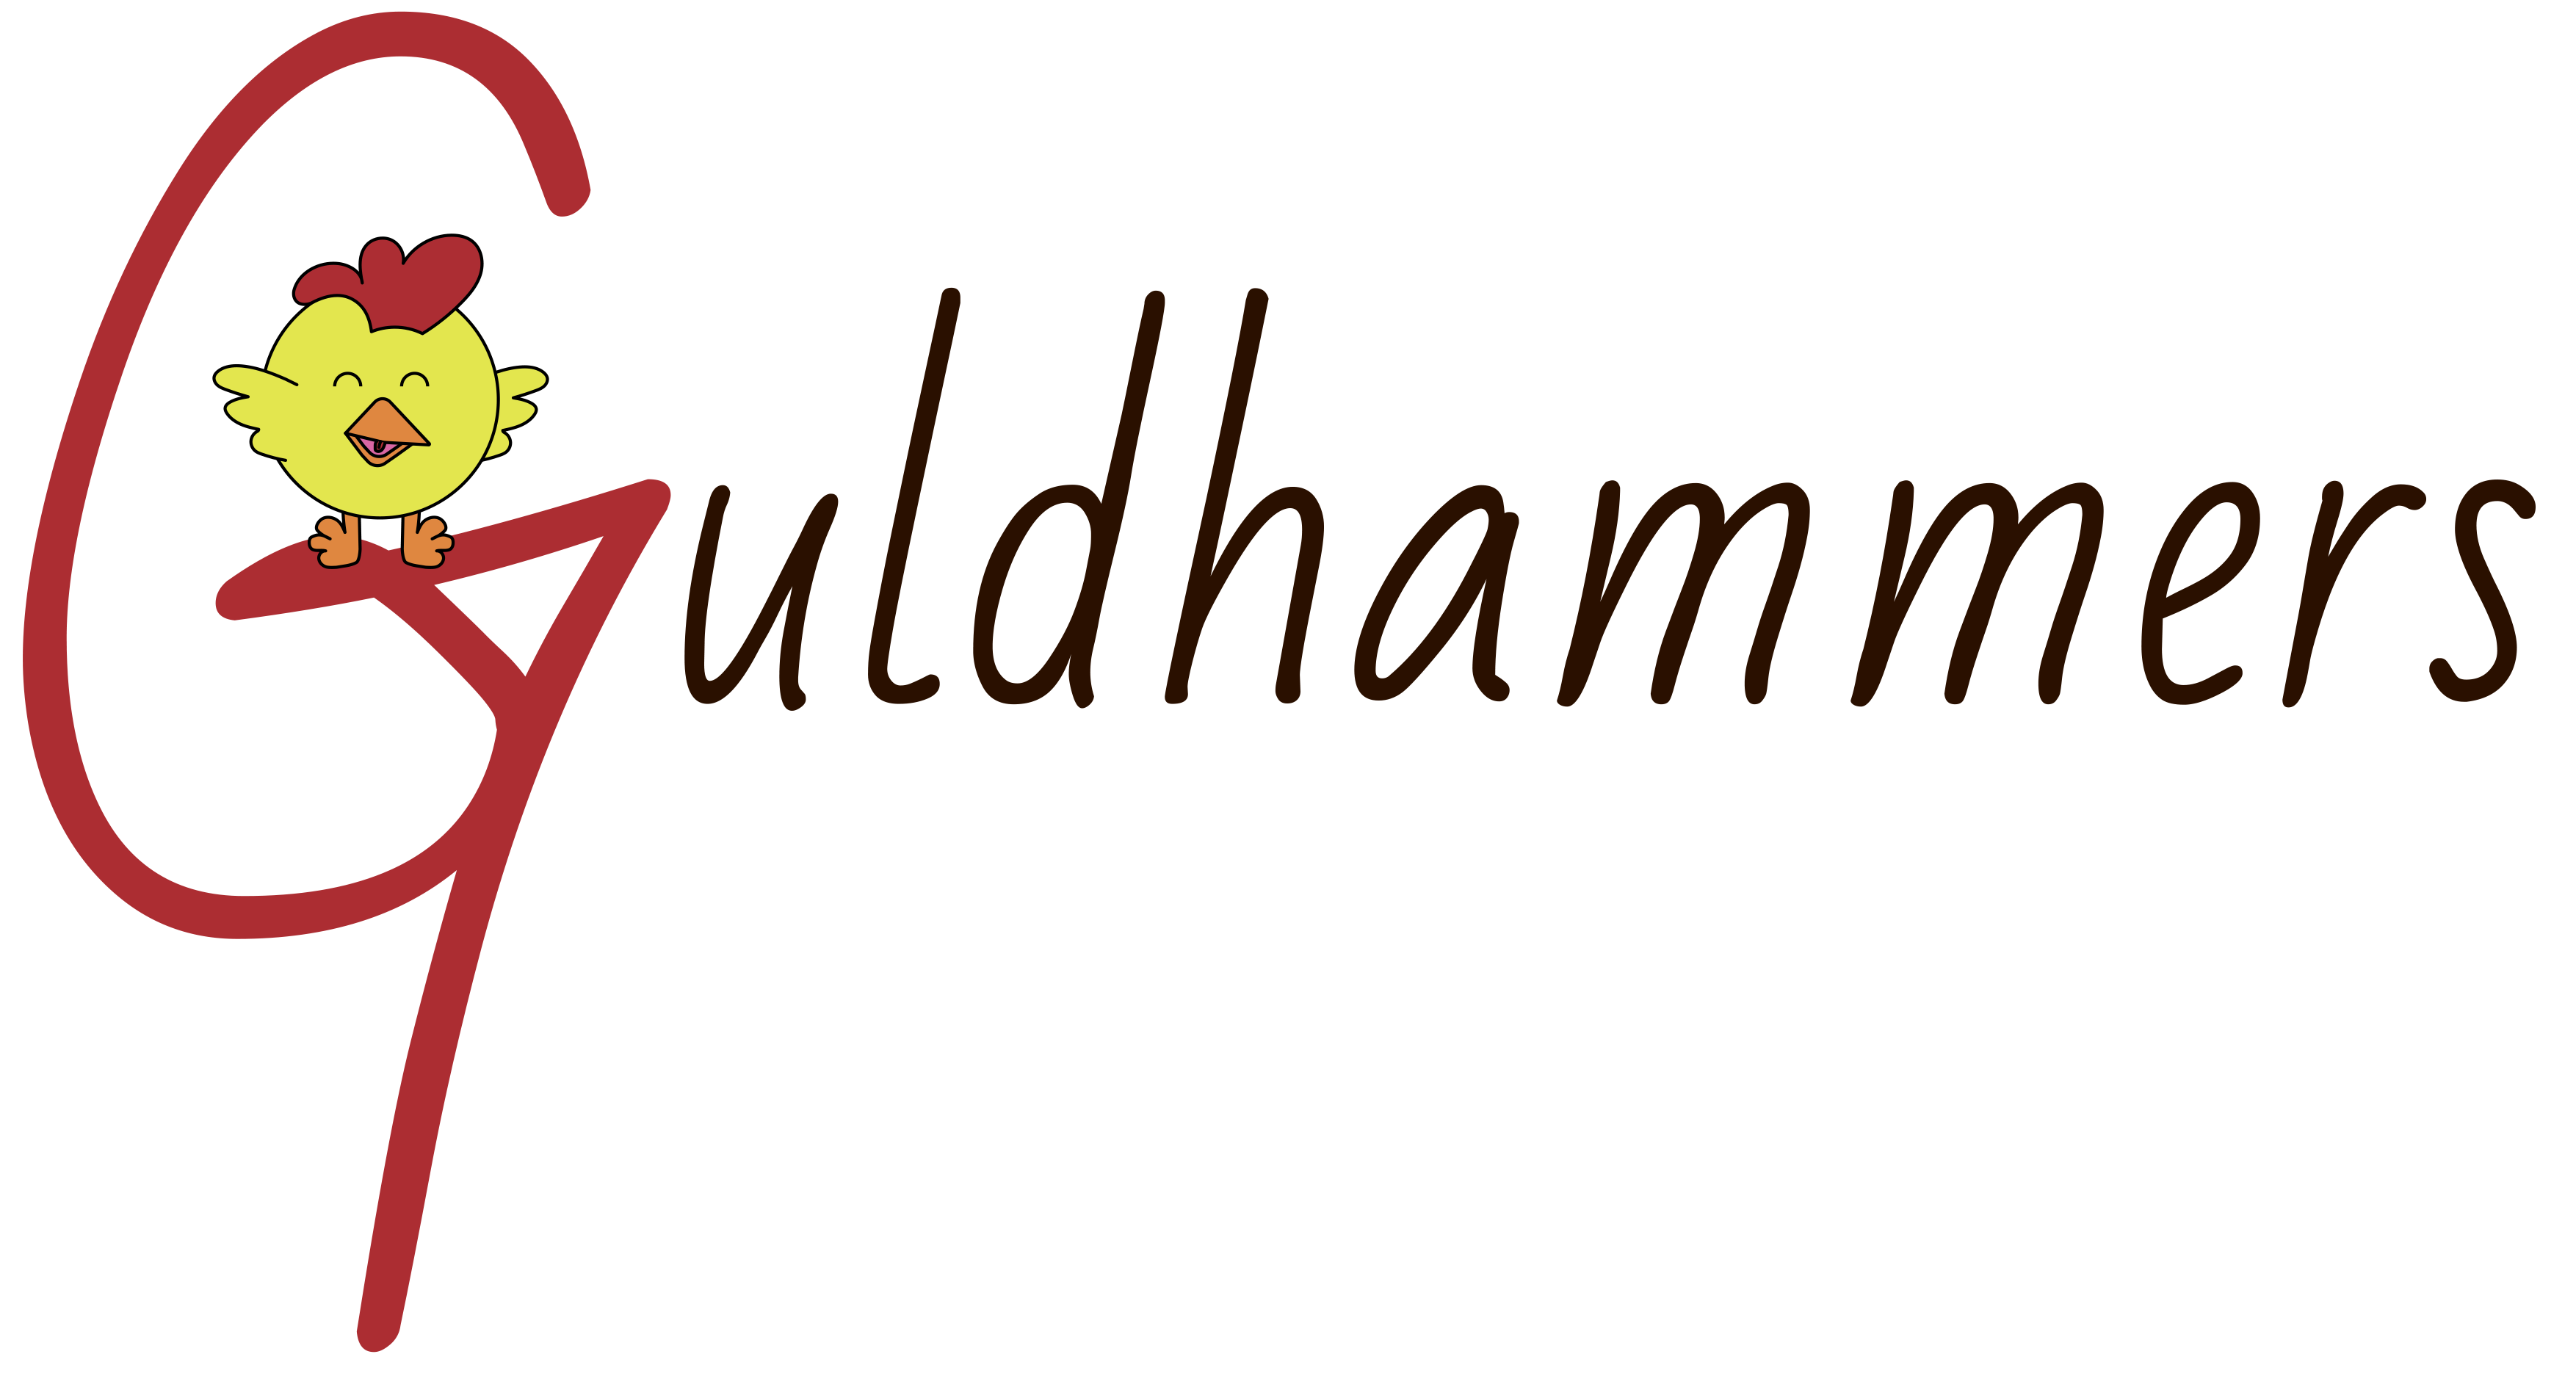 Guldhammers